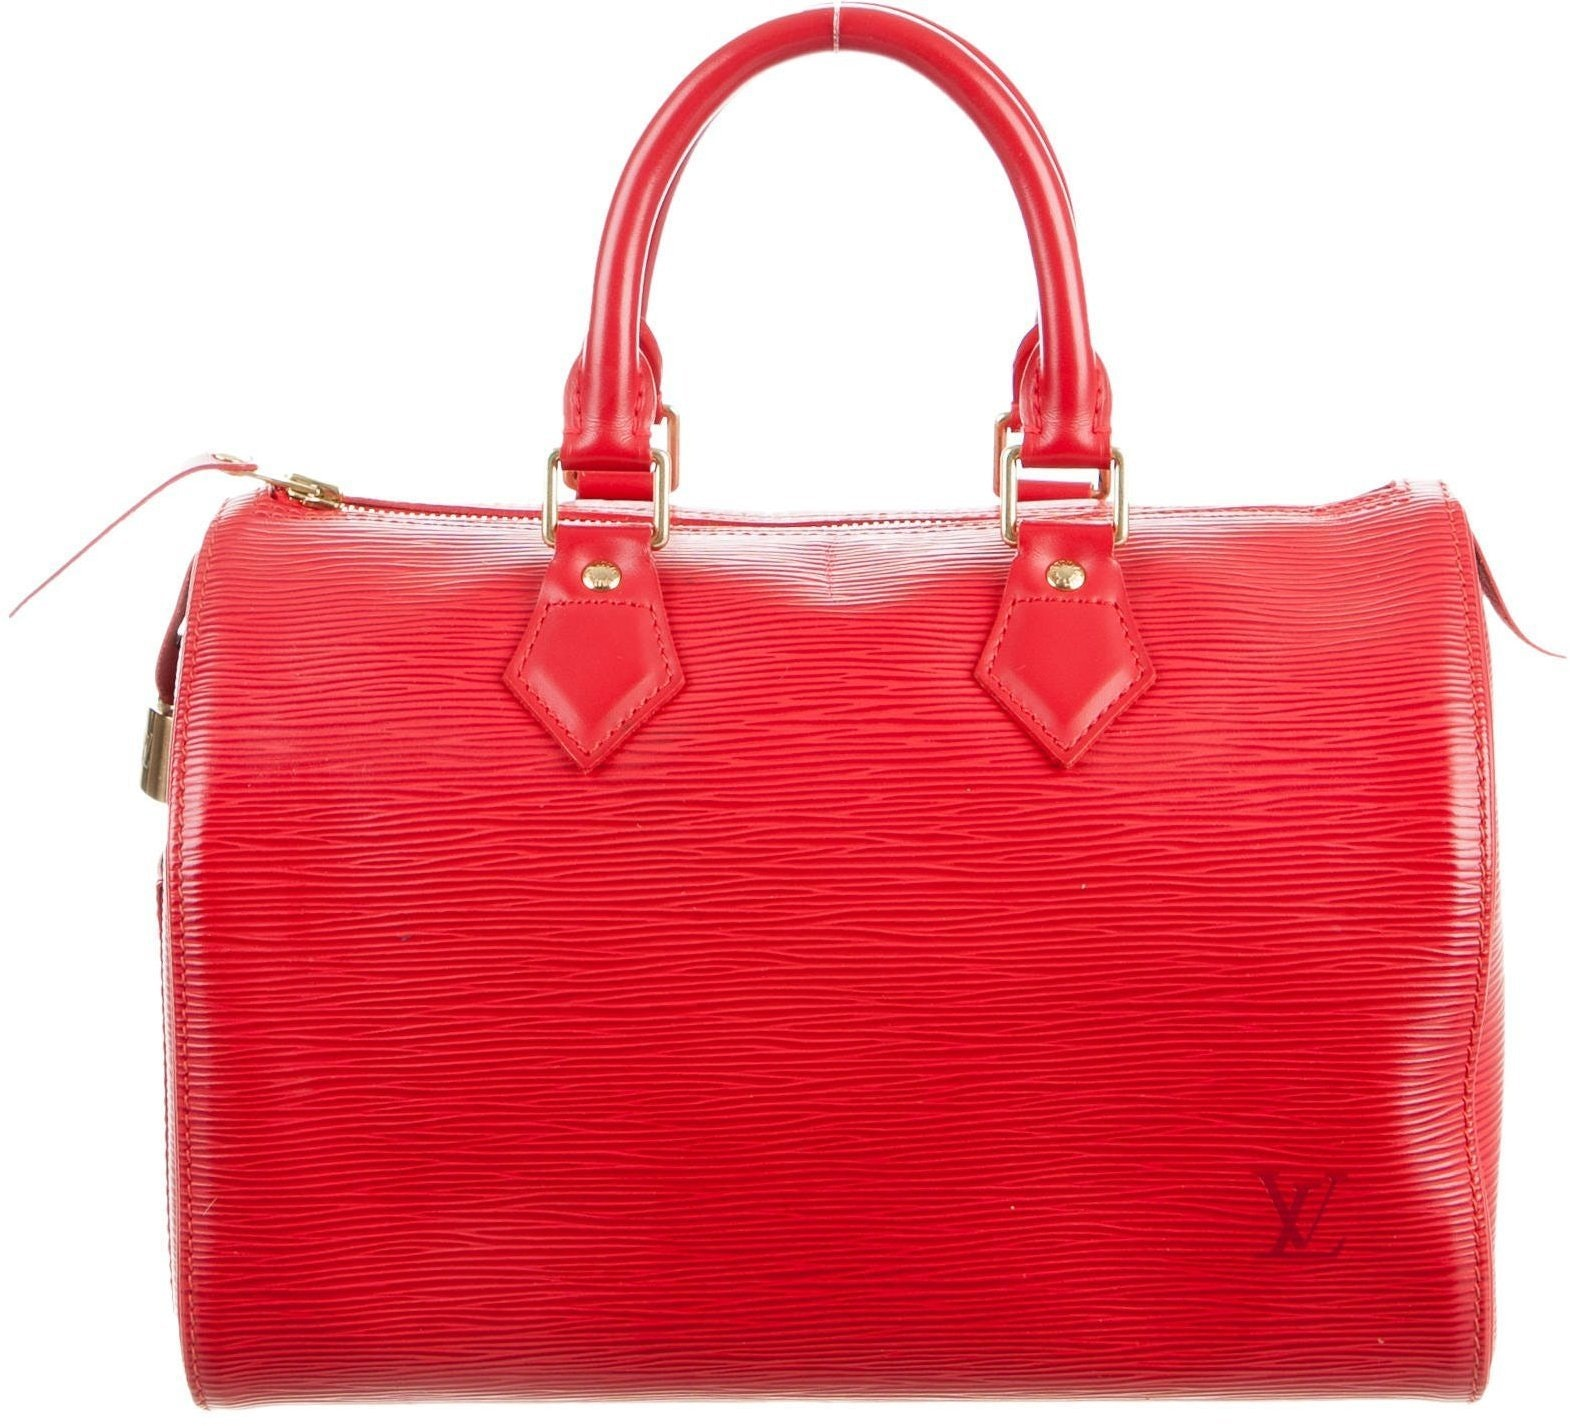 Louis Vuitton Speedy Epi 25 Red